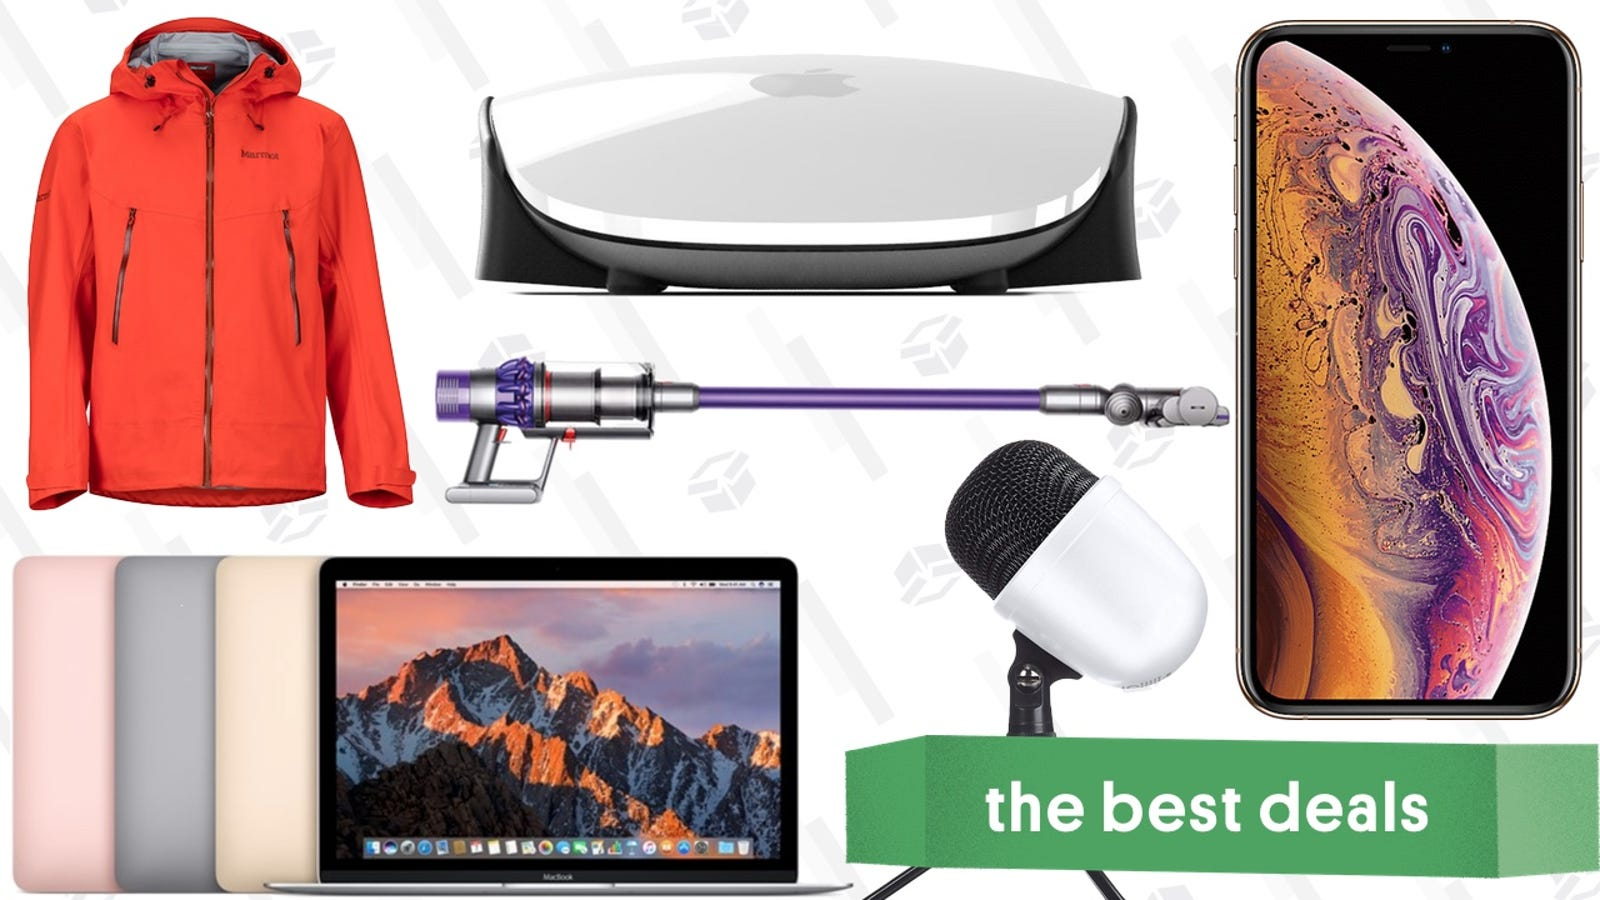 Friday's Best Deals: New iPhones, Cheaper MacBooks, Dyson Vacuum, and More